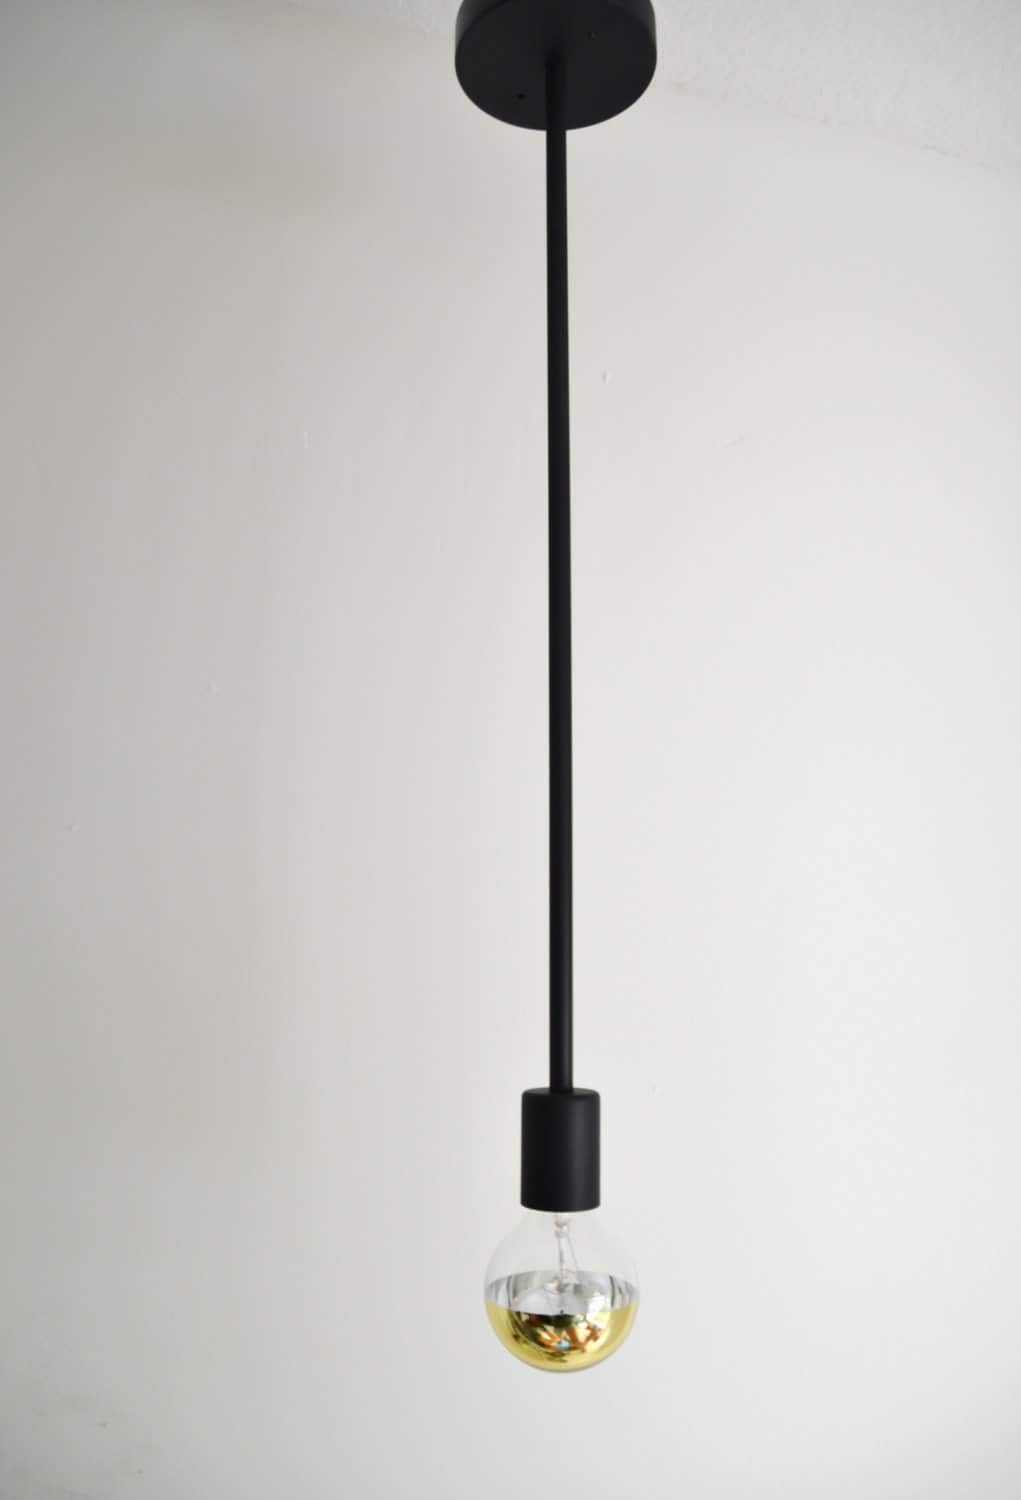 Stem Modern Single Rod Black Light Fixture Simple Hanging